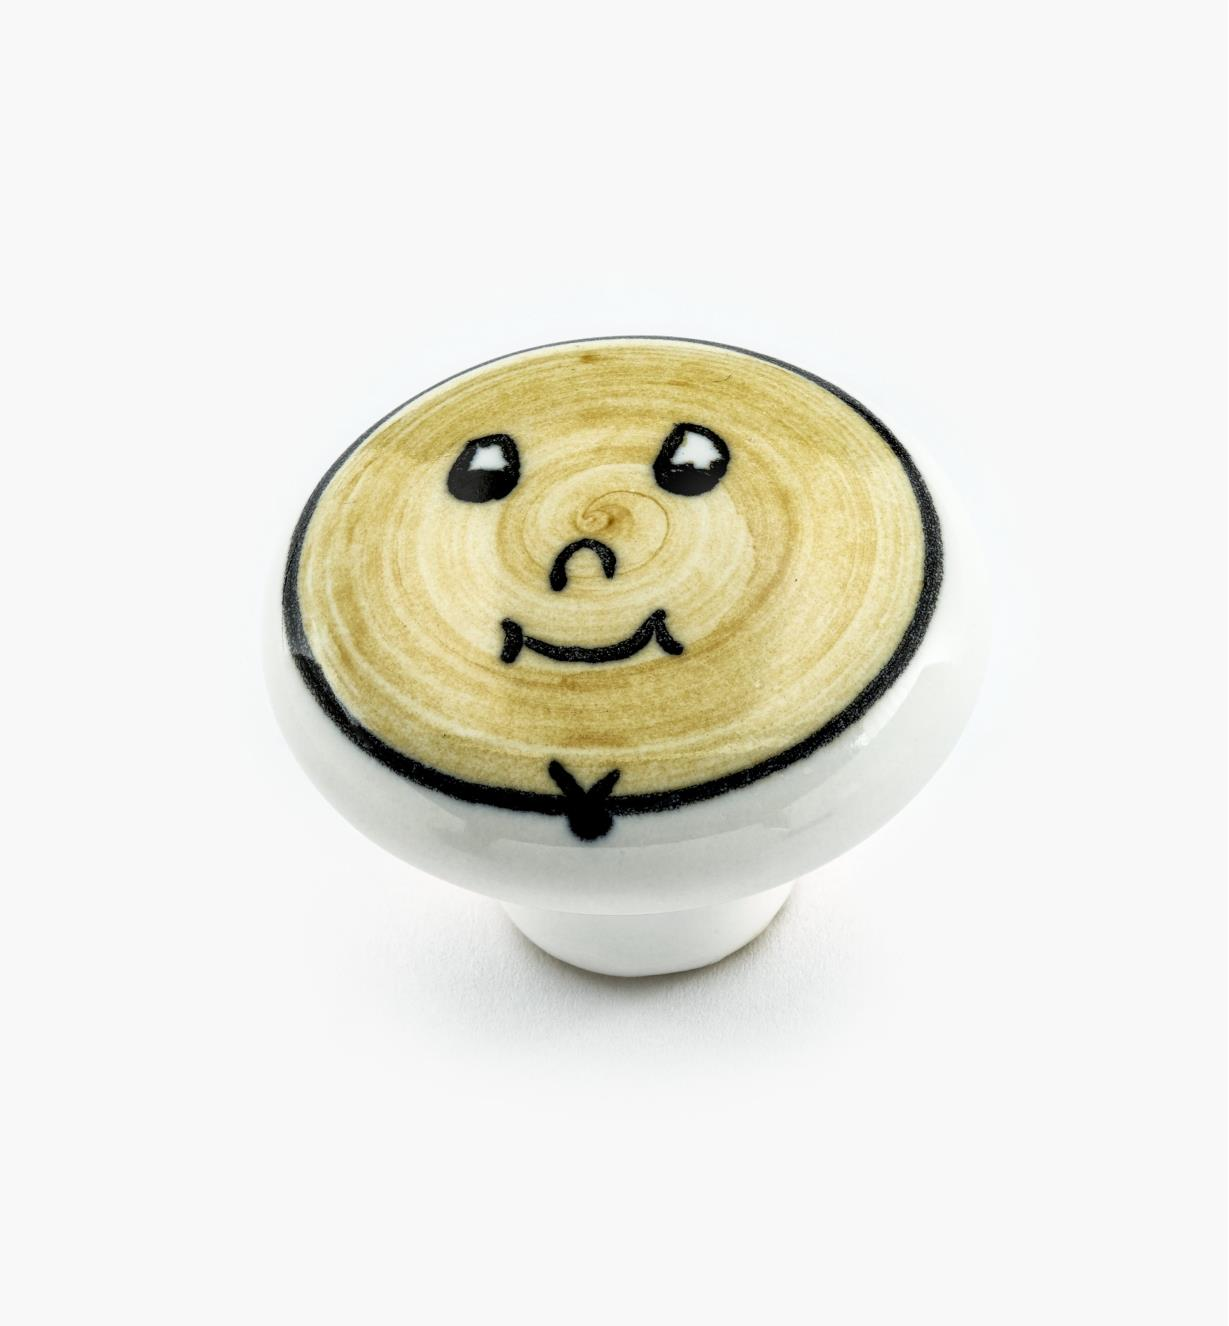 00W5304 - Yellow Face Knob